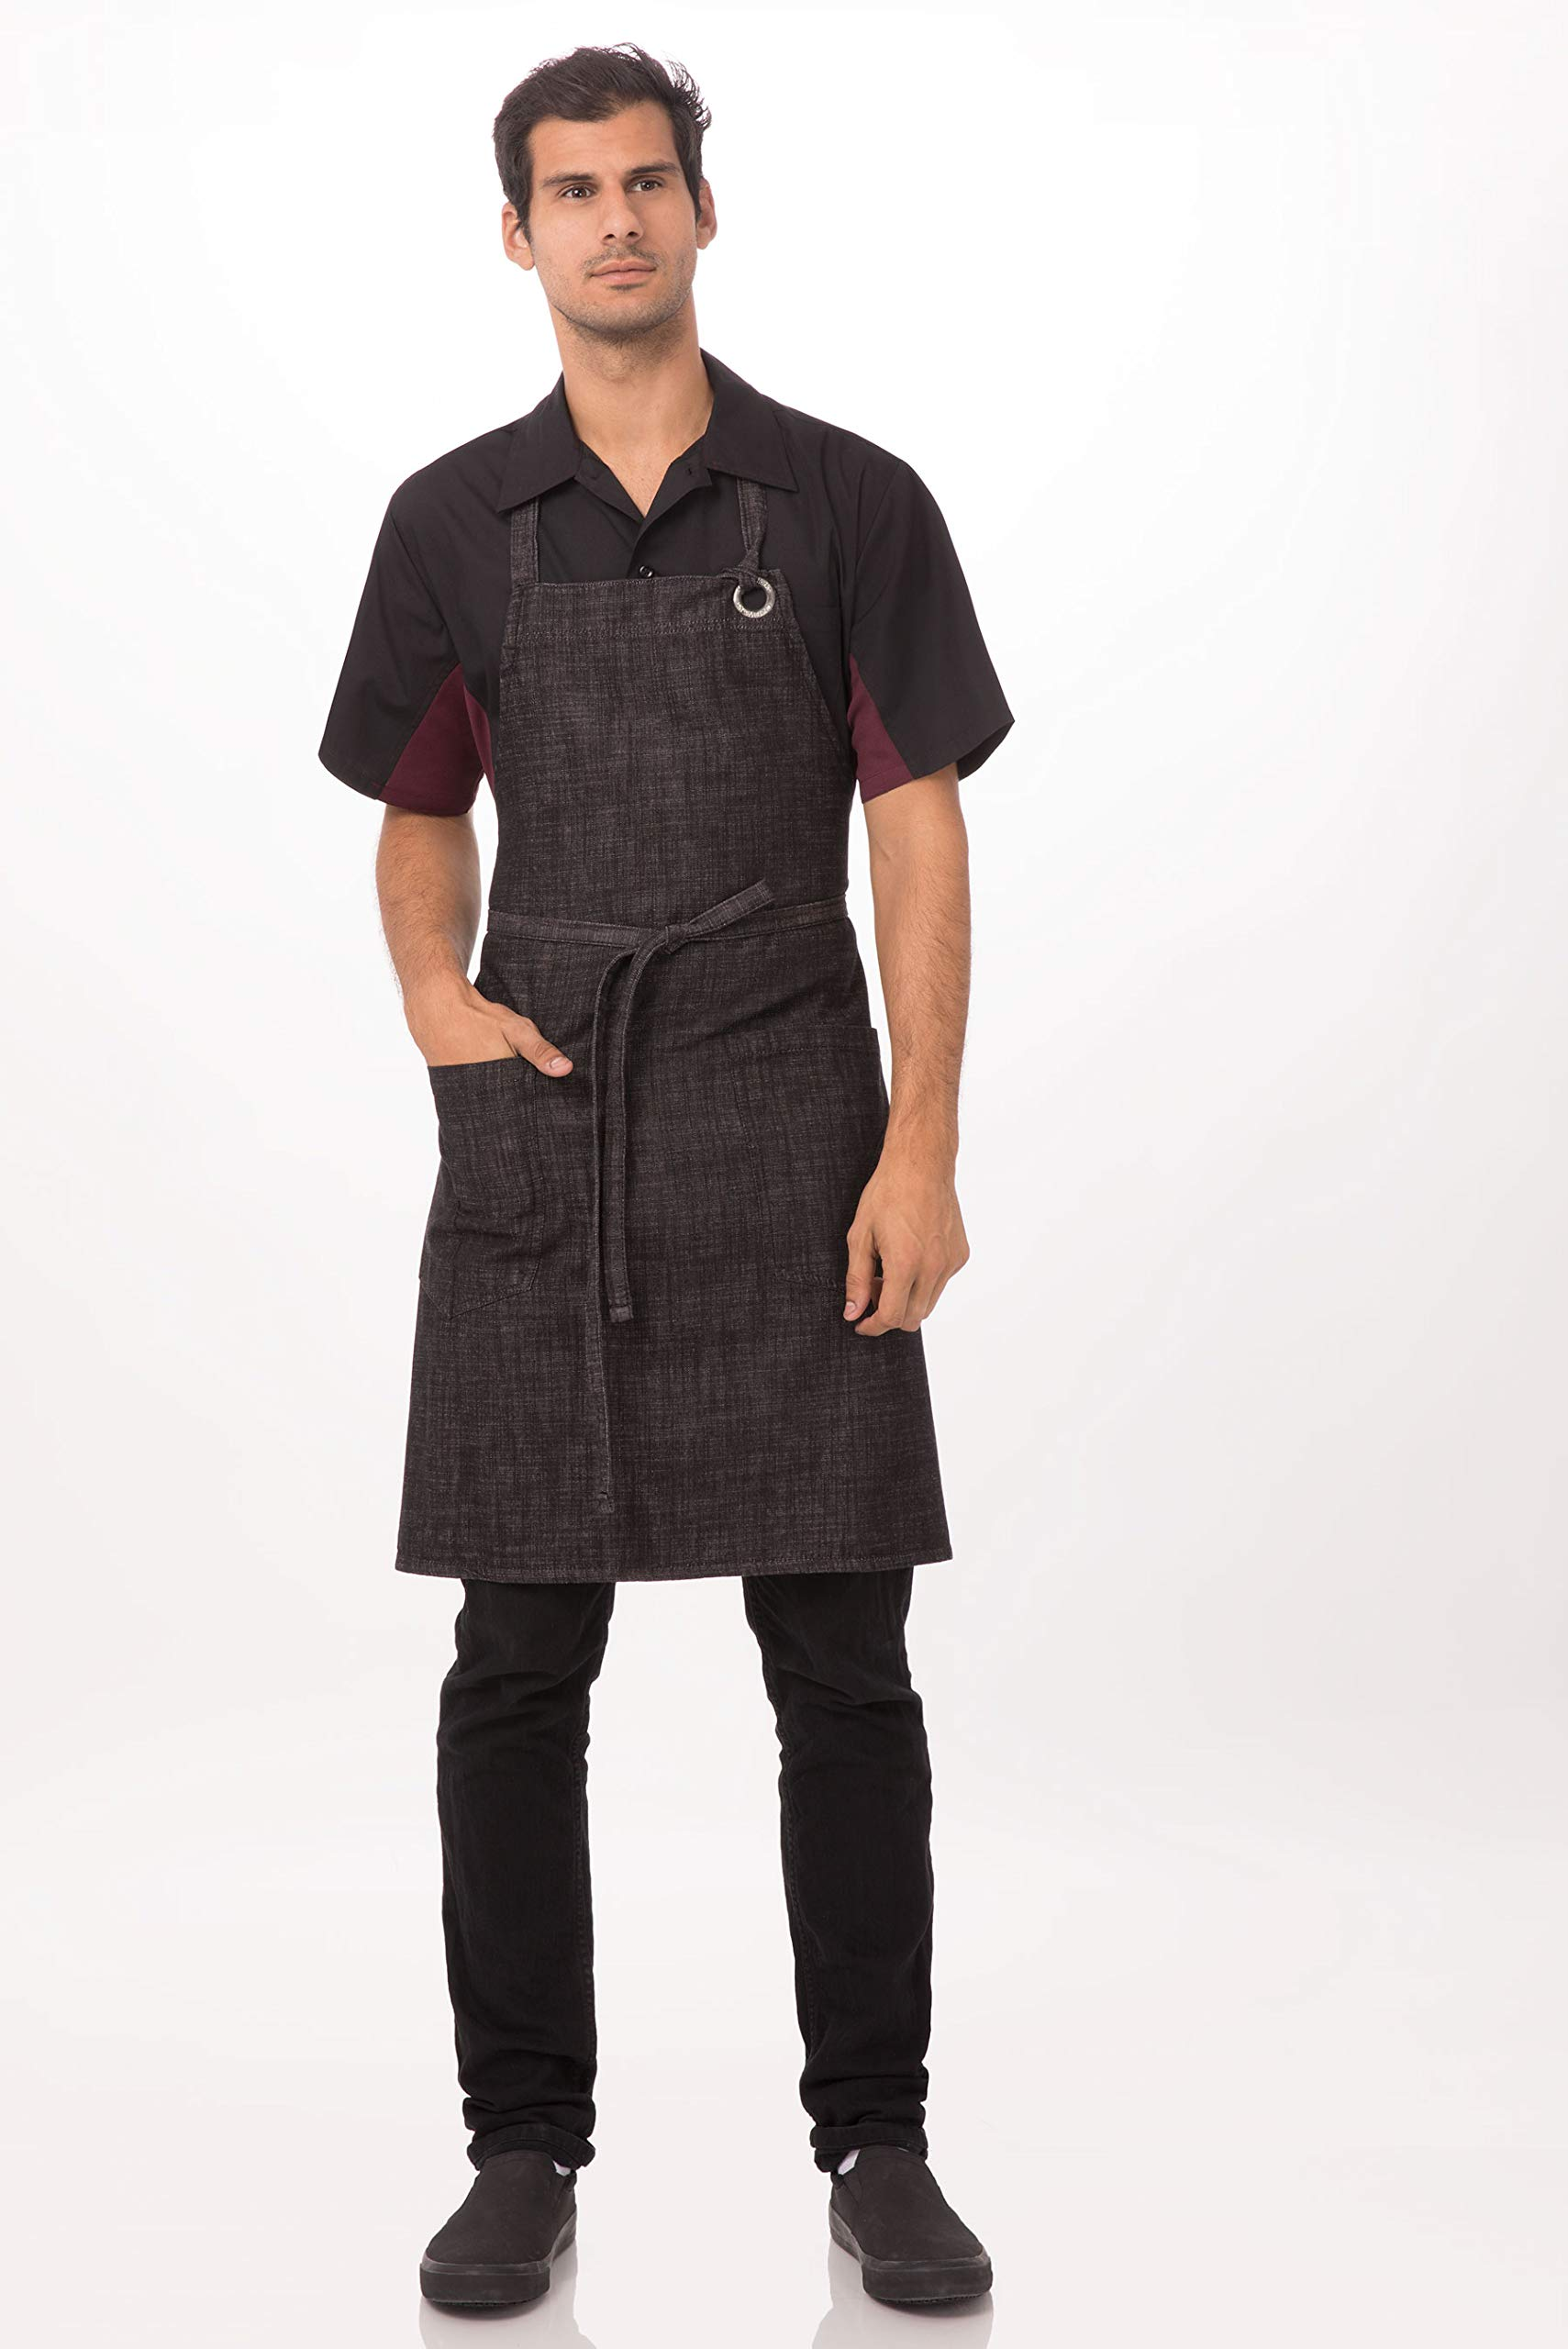 Chef Works Unisex Corvallis Bib Apron, Black/Burgundy, One Size by Chef Works